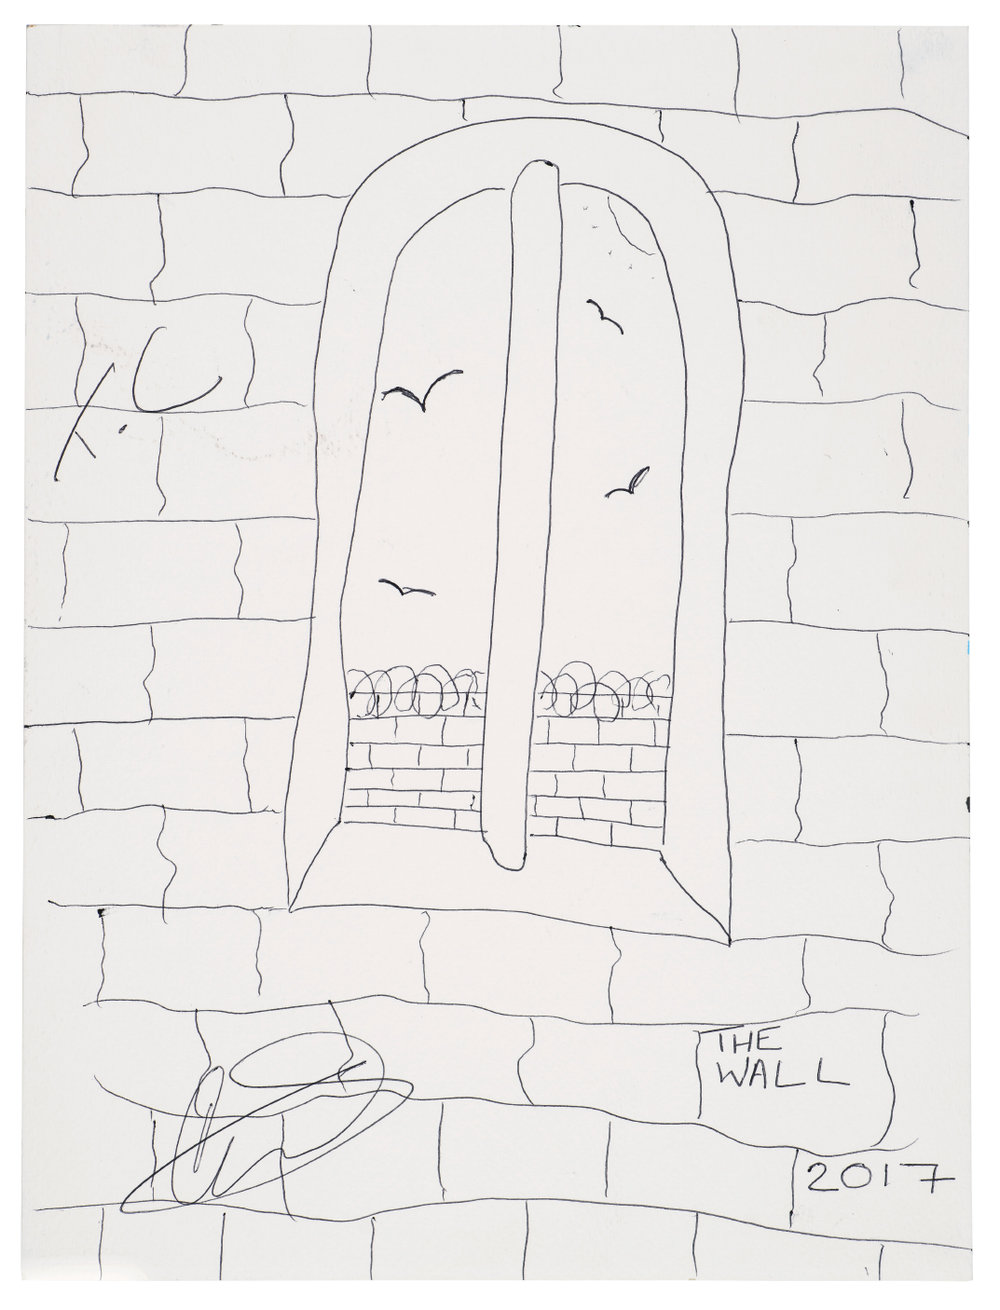 'I'm behind the wall, looking at the outside' by Name not given (Biro) £25.jpg